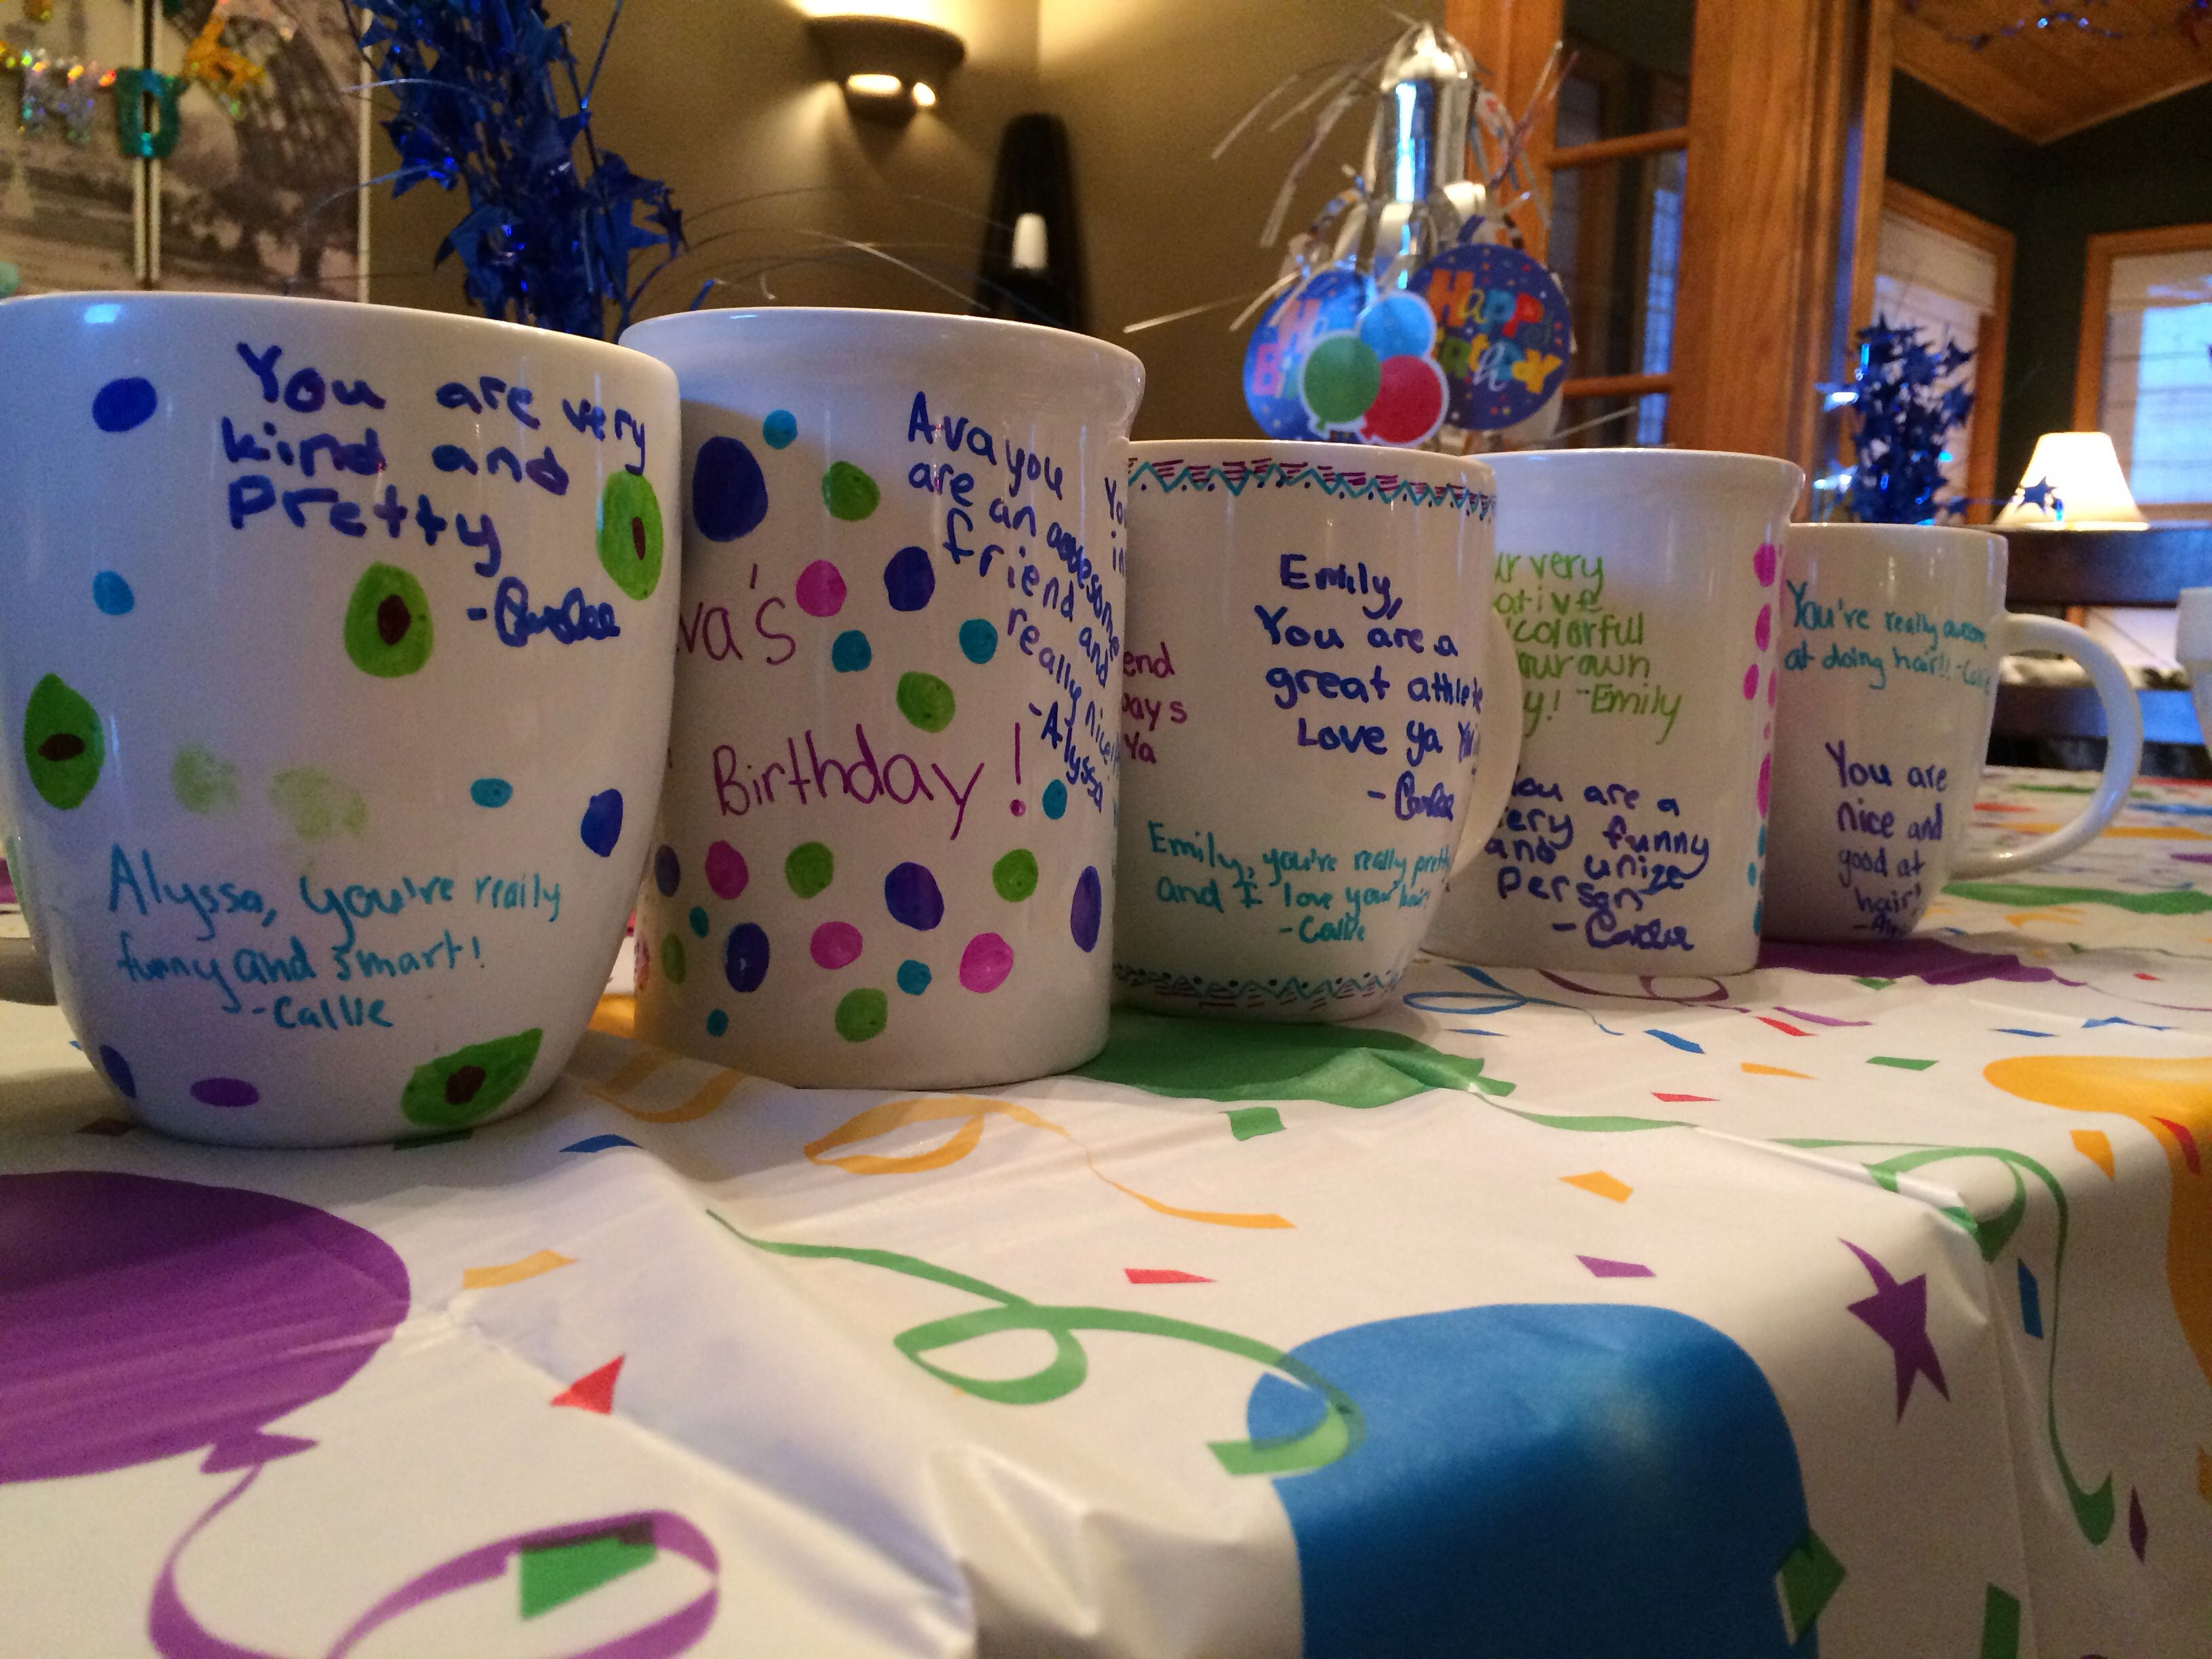 Sharpie Mugs Birthday Fun For 12 Year Old Girls Dollar Store Mugs Colorful Sharpies Fr Birthday Party Activities 12th Birthday Party Ideas Sleepover Party